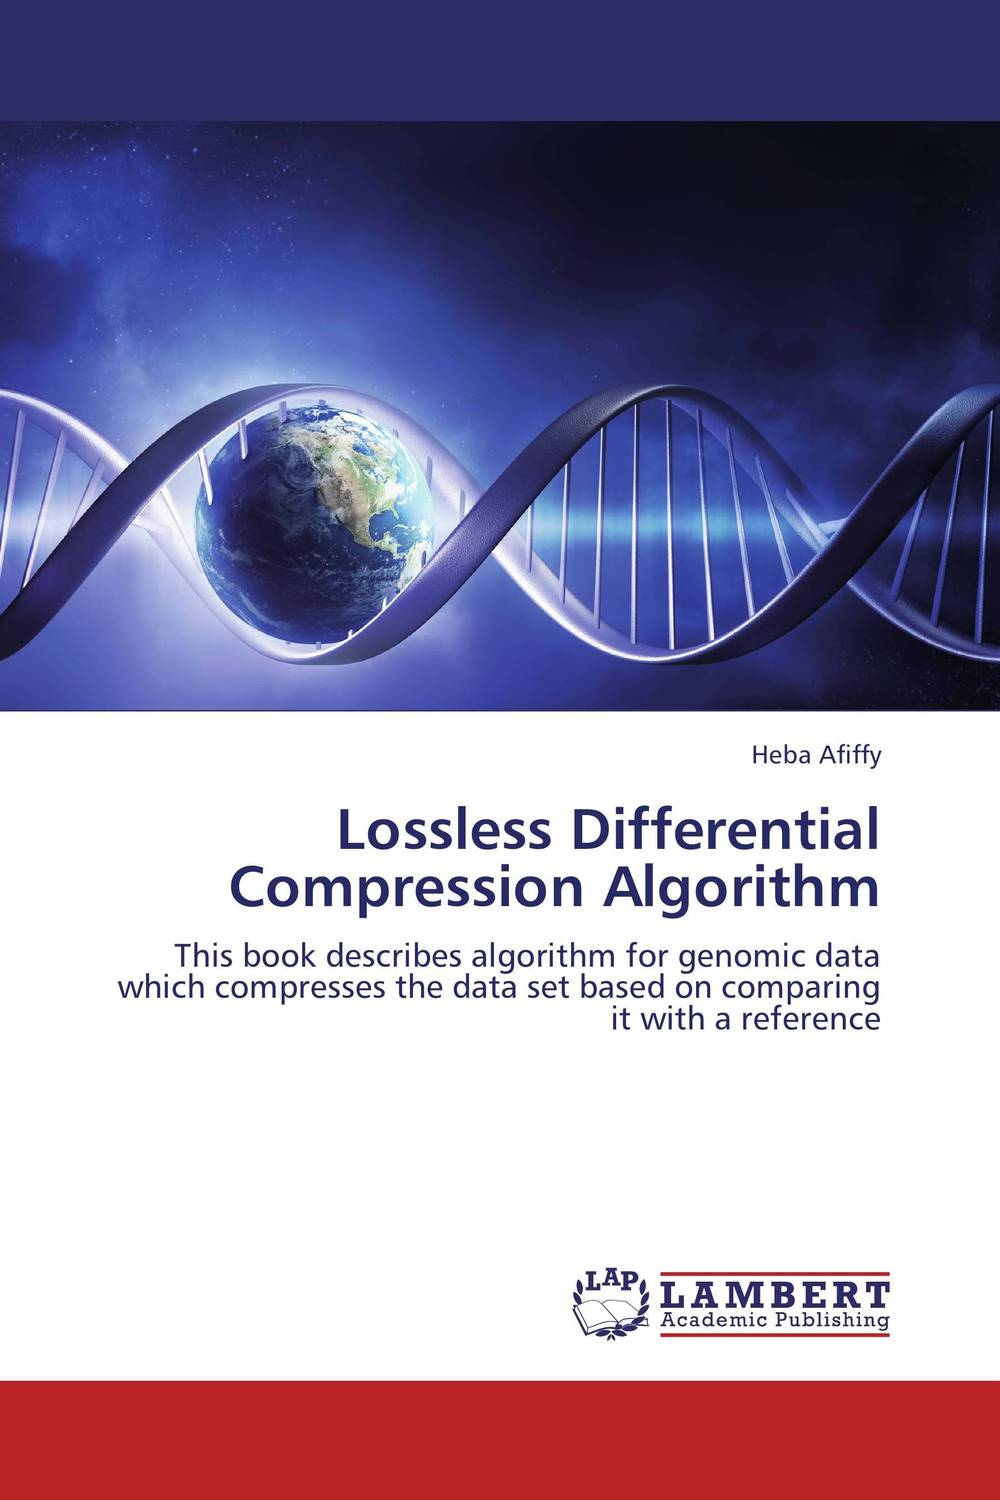 Lossless Differential Compression Algorithm manpreet kaur saini ravinder singh mann and gurpreet singh an efficient lossless medical image compression